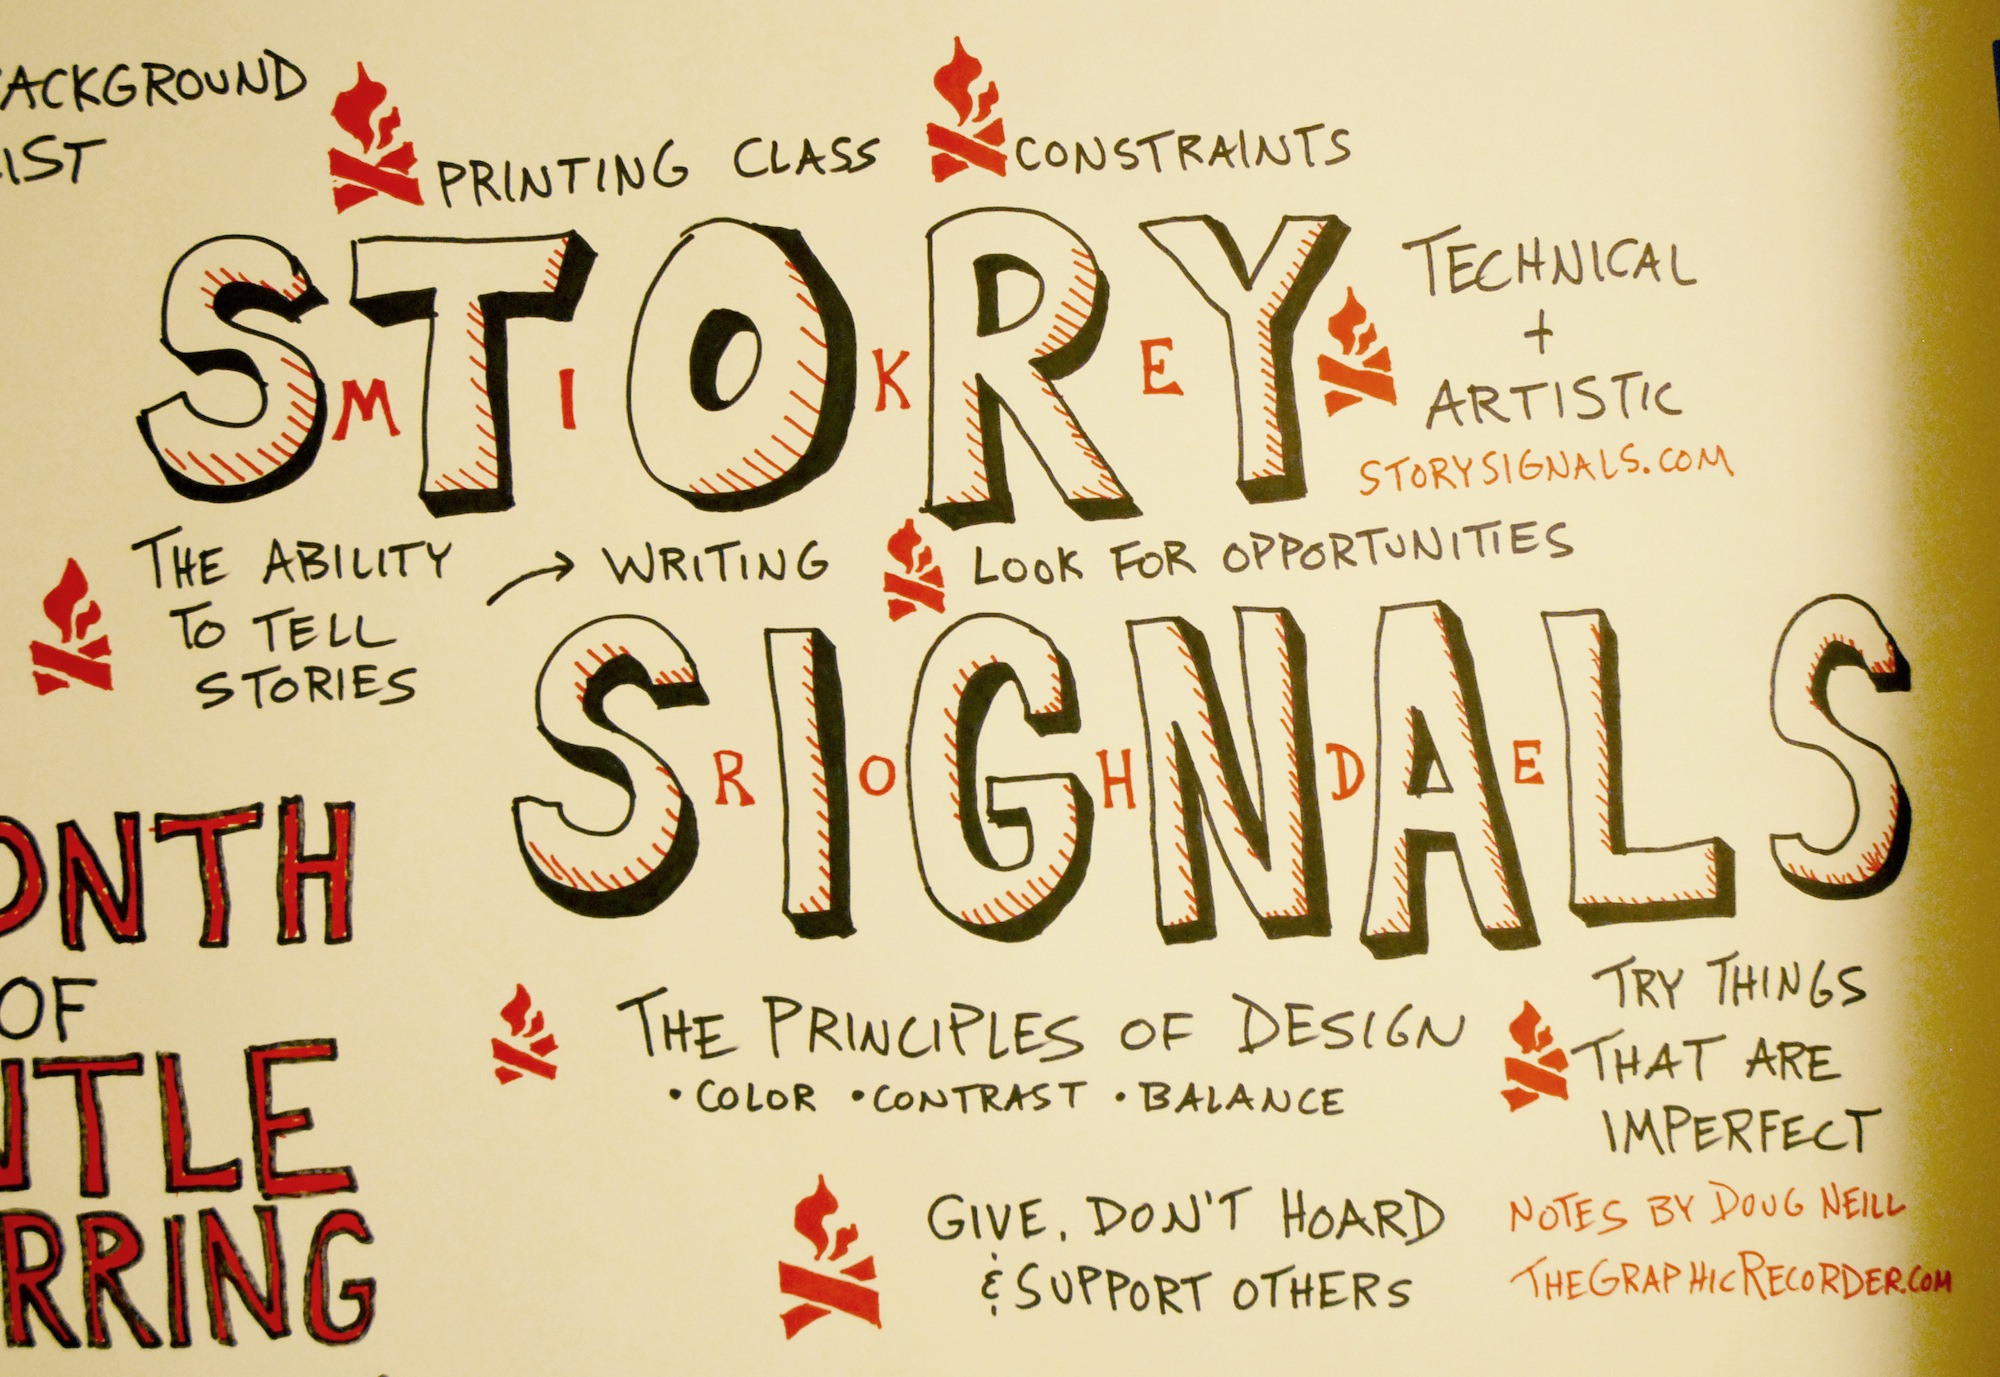 Story Signals Interview with Mike Rohde Graphic Recording - Doug Neill Sketchnotes, design, creative constratins, opportunities, stories, writing, technical + artistic, support others